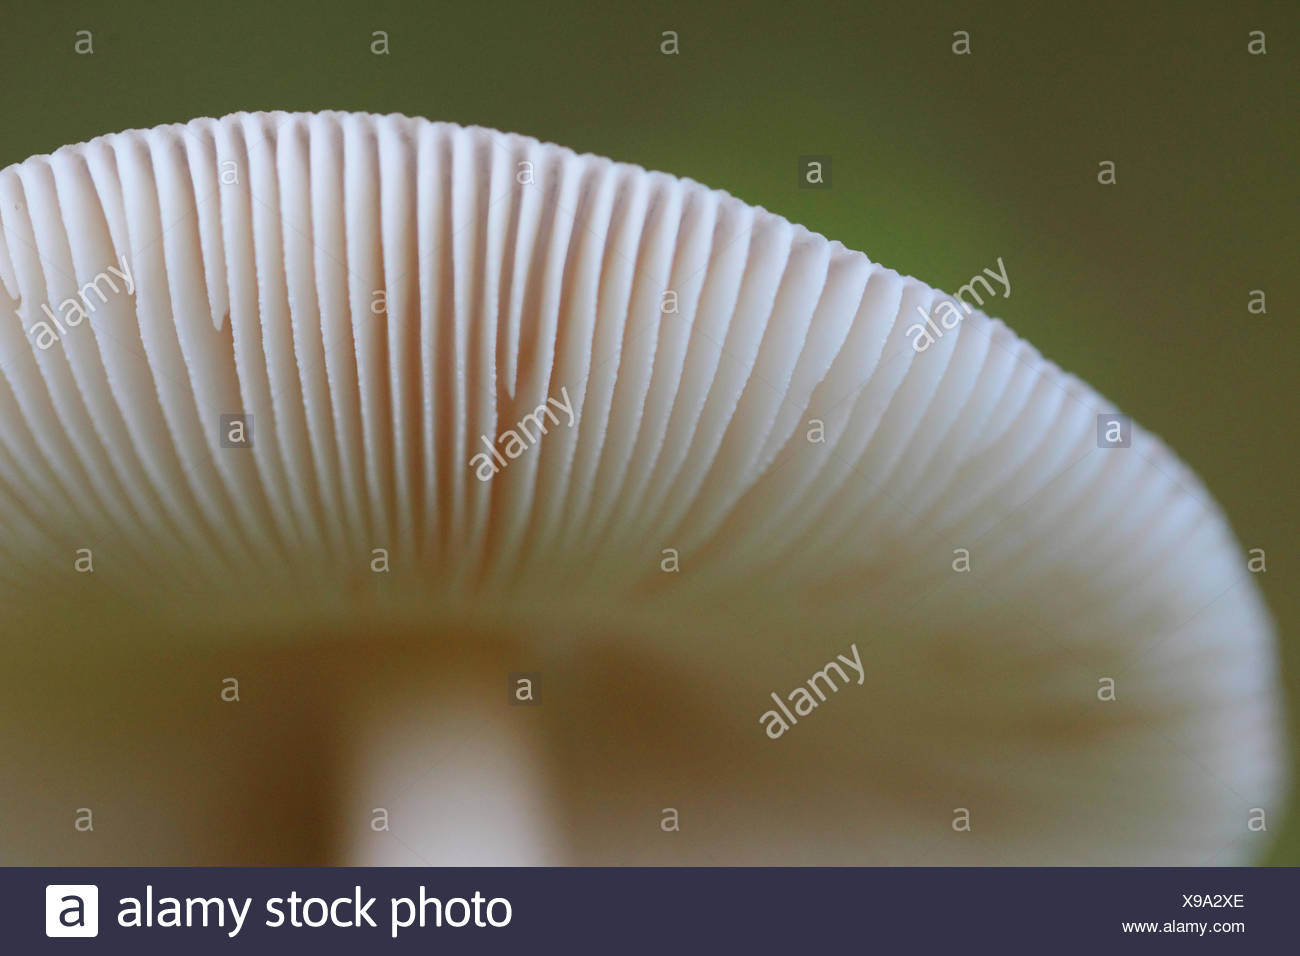 Close up of a panther cap or false blusher mushroom, Amanita pantherina var. pantherina. It contains the psychoactive compound muscimol, but is used as an entheogen much less often than the related Amanita muscaria. - Stock Image